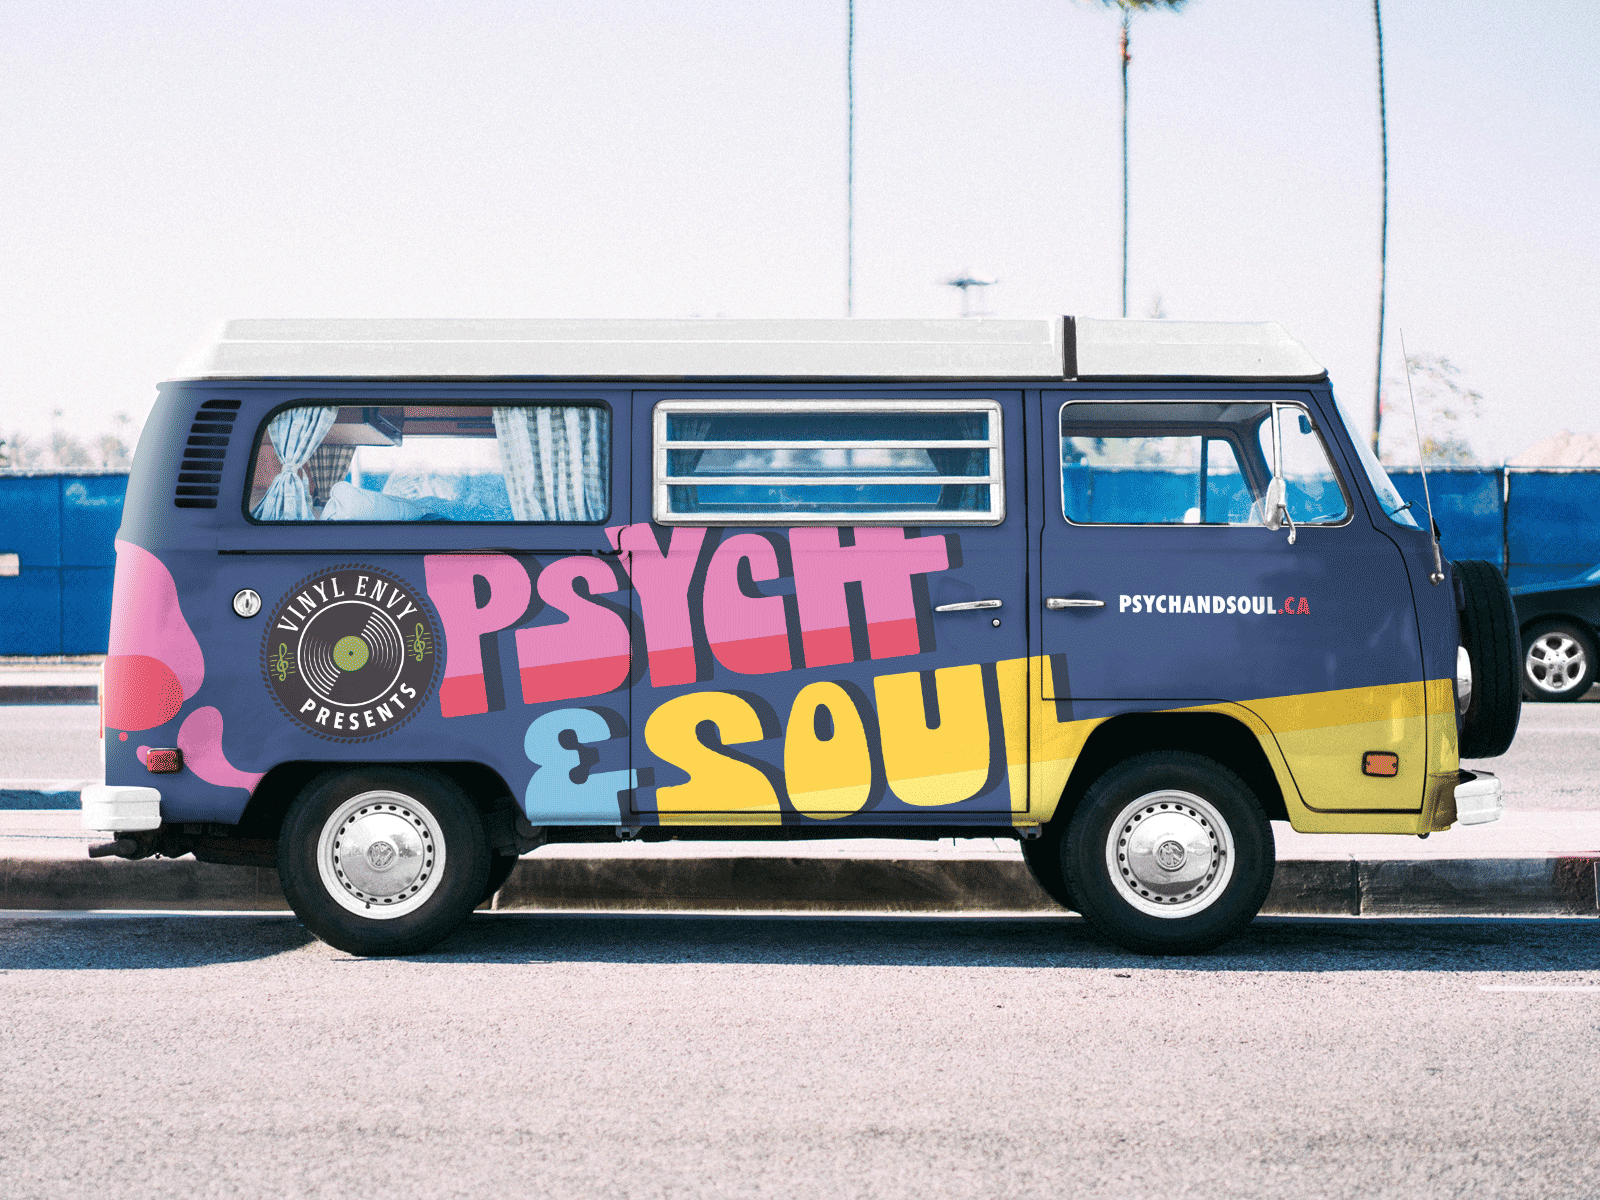 van decals designed for psych and soul music festival